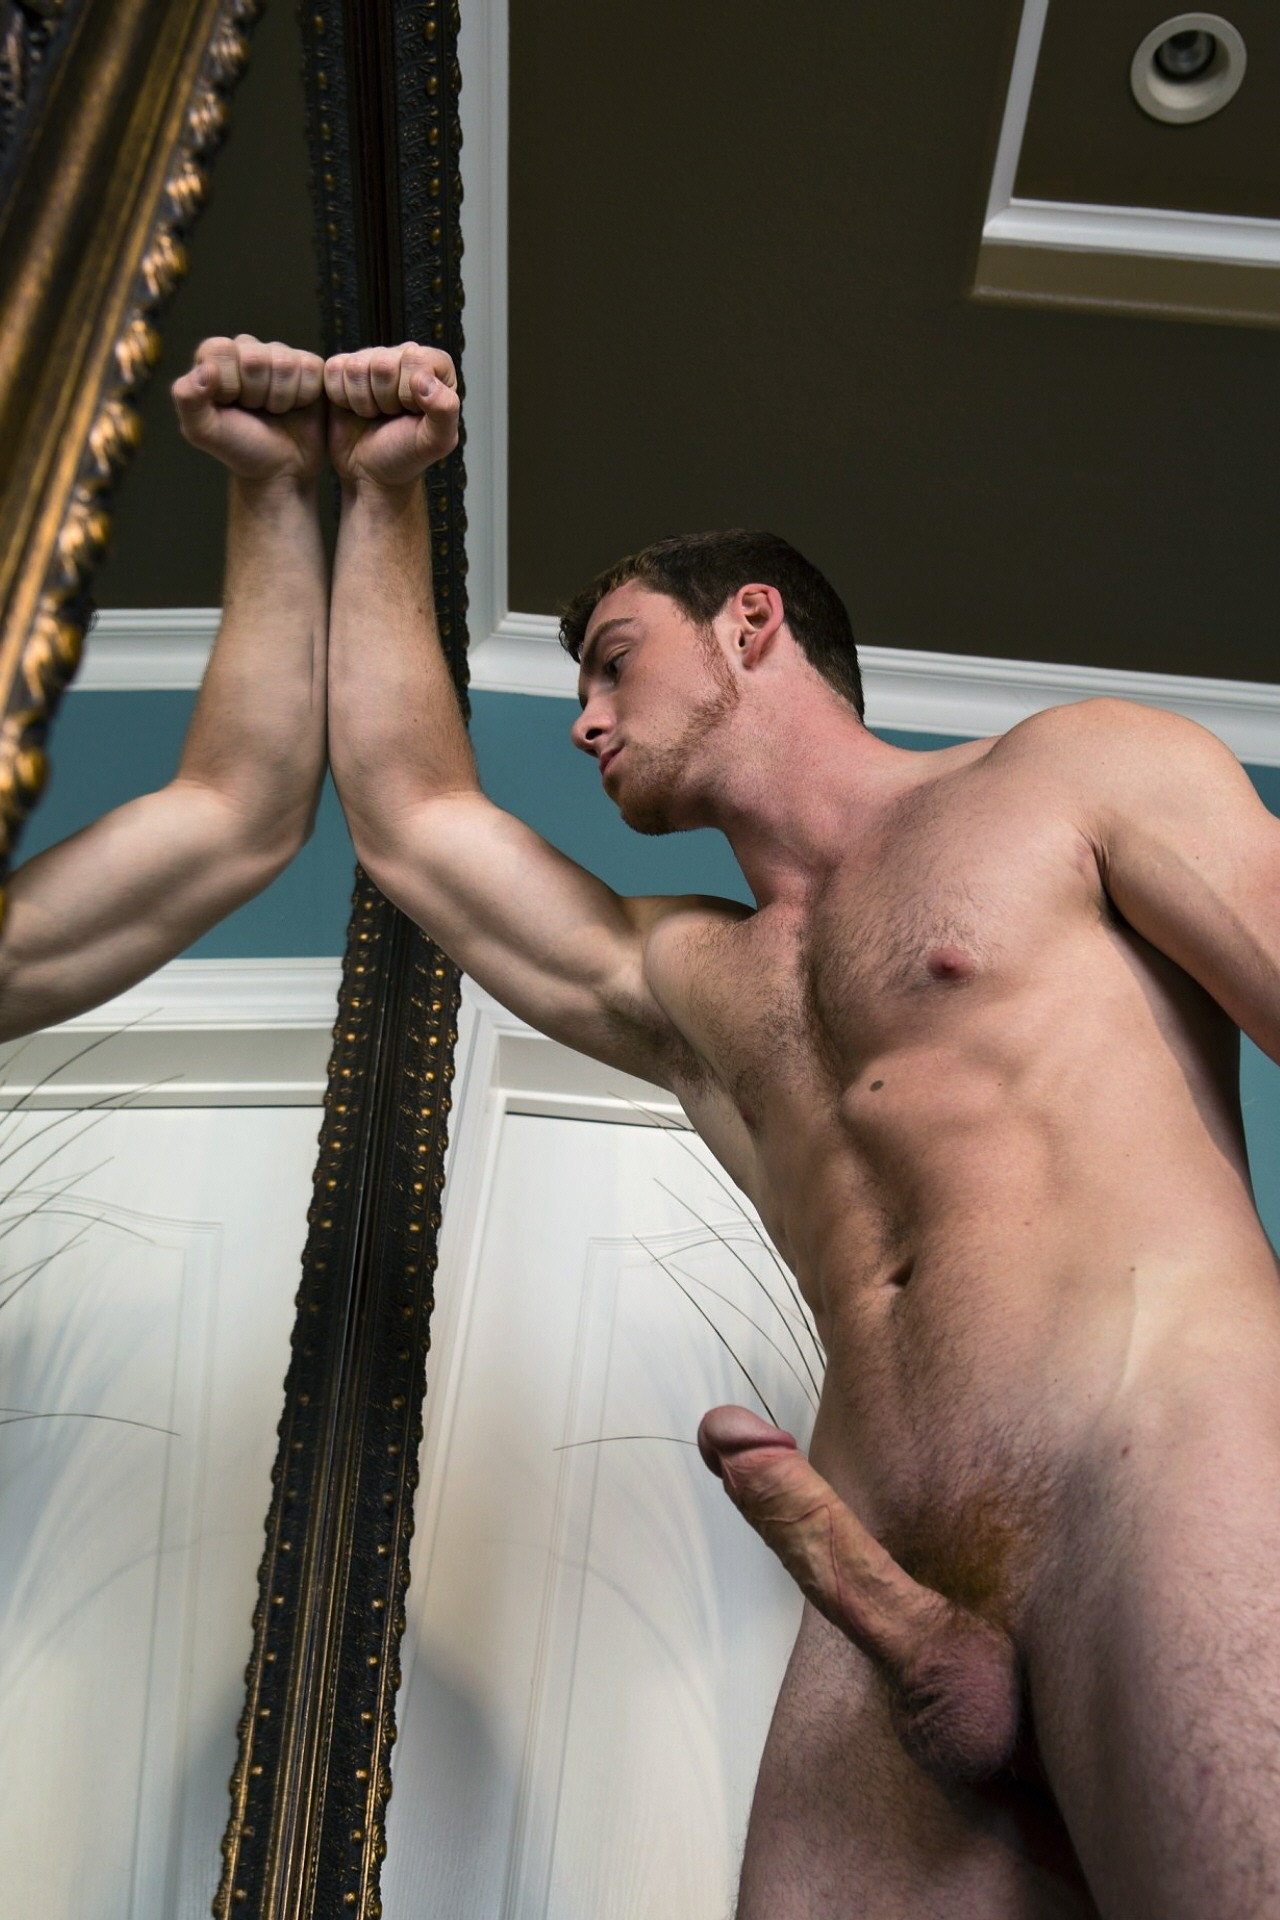 malegalore:  Connor Maguire shows his morning boner